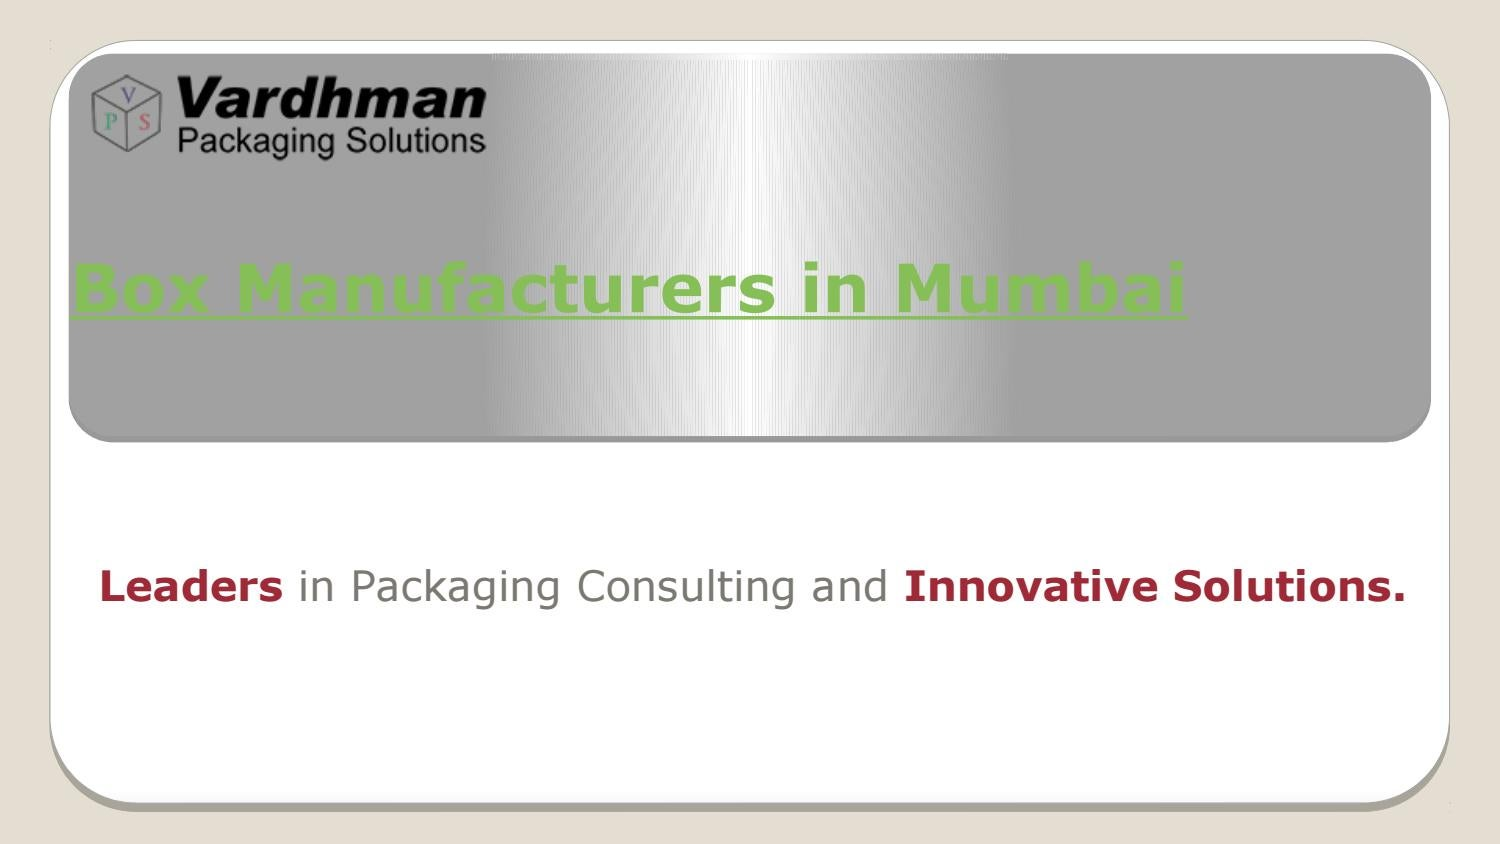 Box manufacturers in mumbai by Vardhman Packaging Solutions - issuu